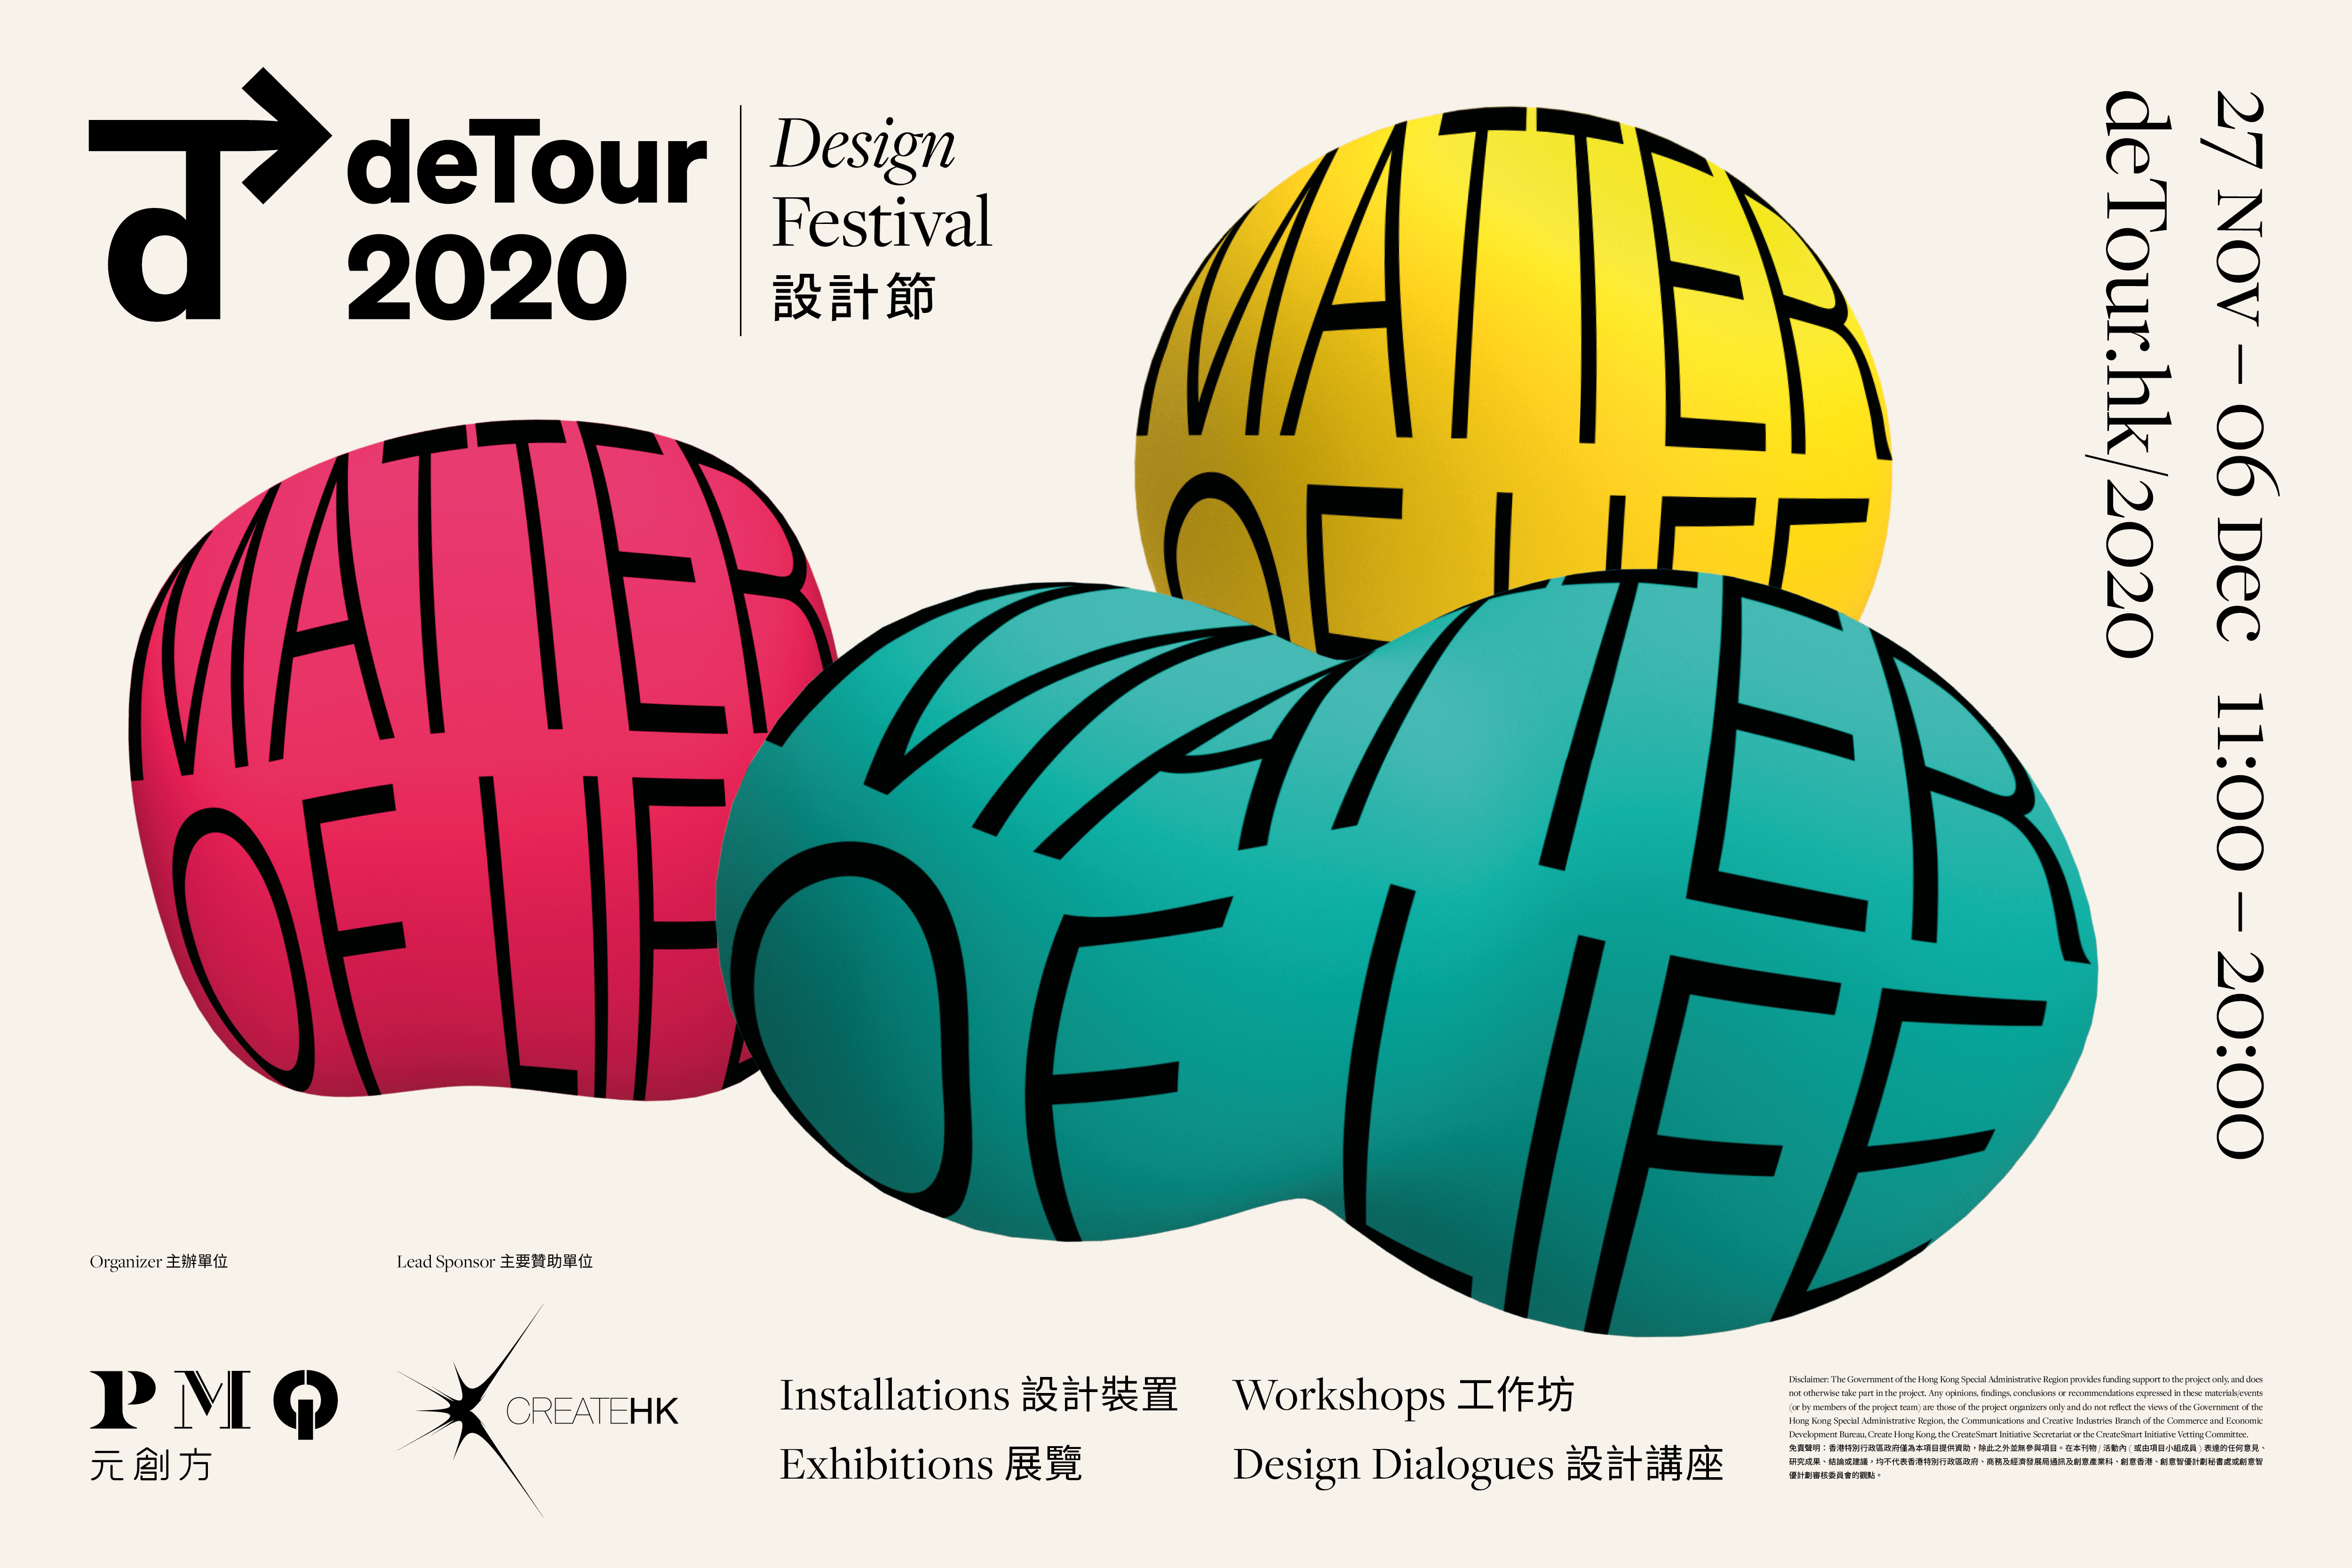 Supporting Event - deTour 2020